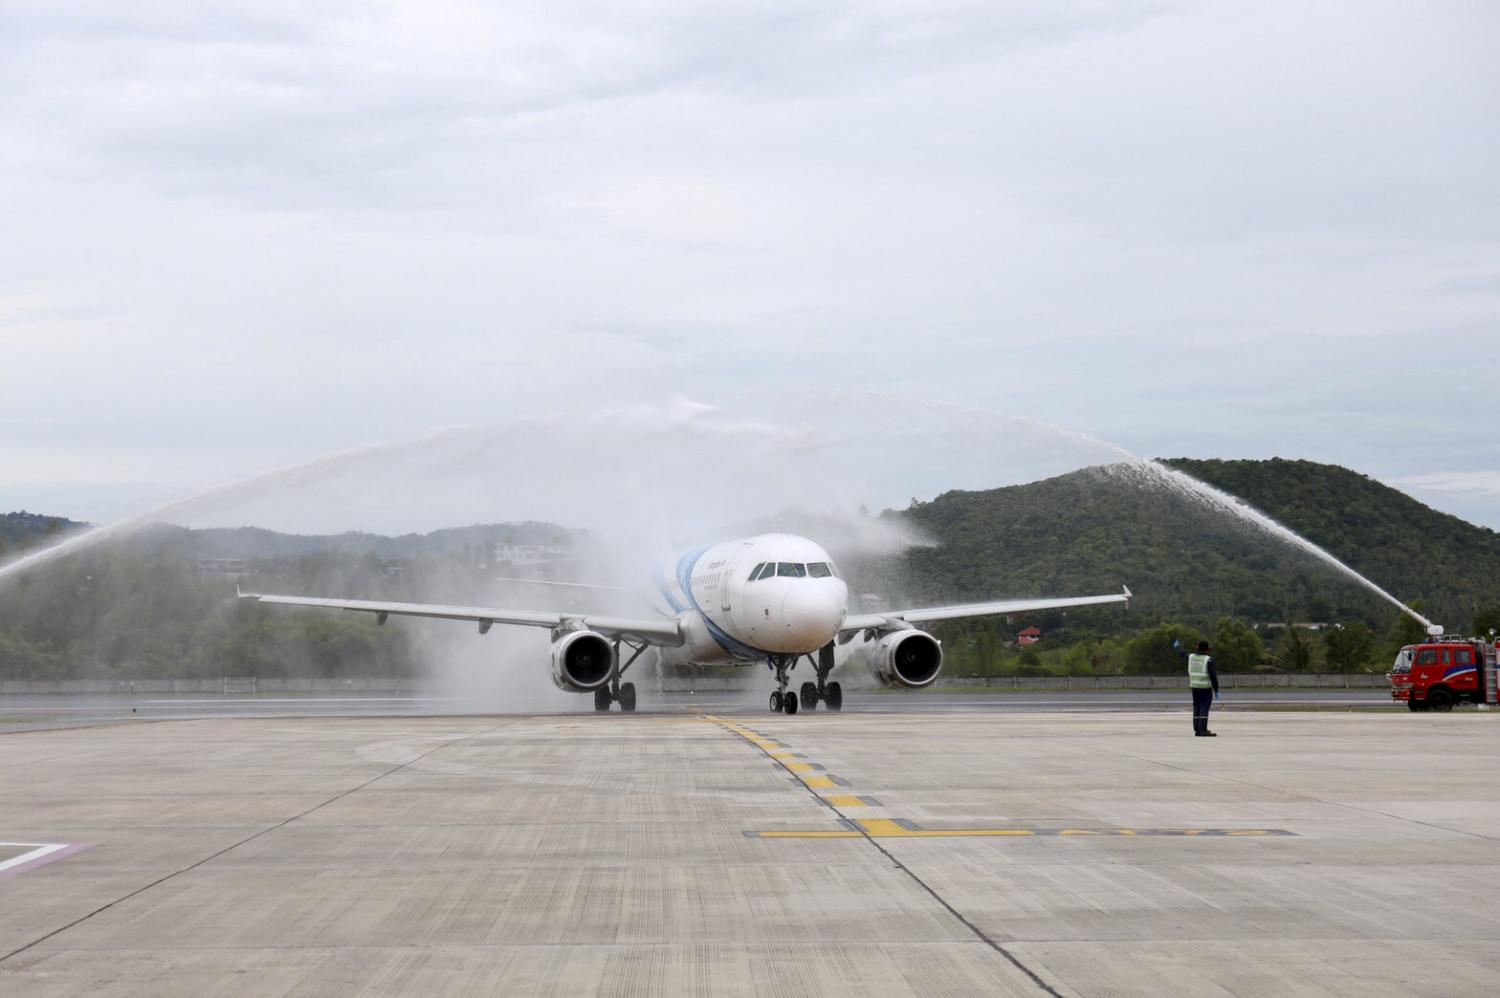 Fire engines spray water on a Bangkok Airways aircraft carrying the first group of foreign visitors to Koh Samui.(Photo: Supapong Chaolan)